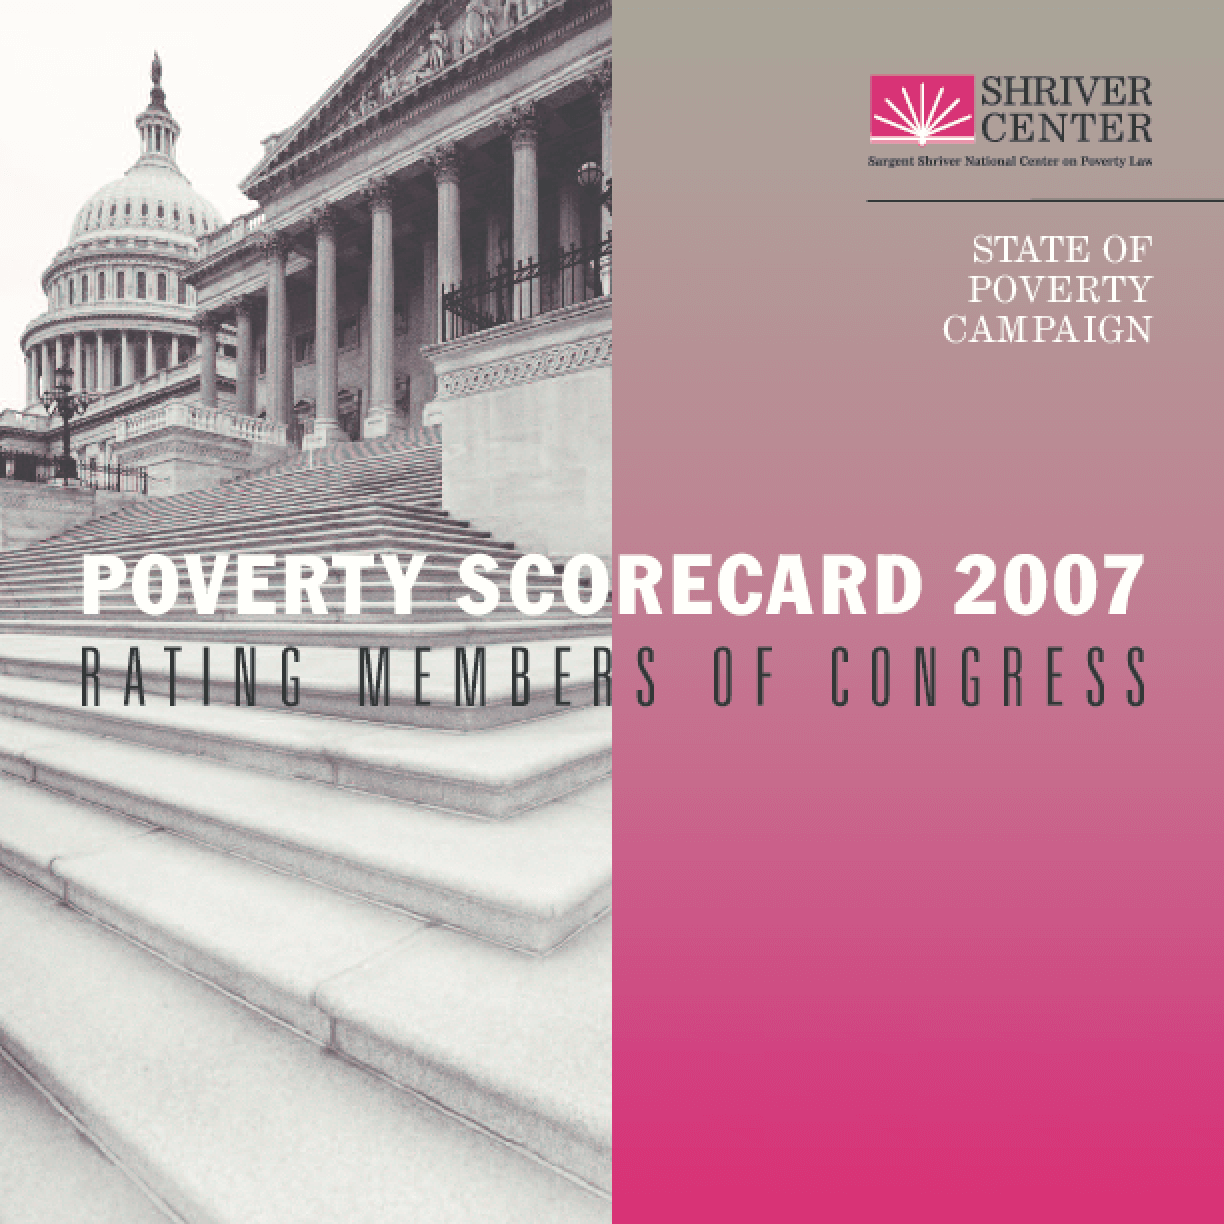 The 2007 Poverty Scorecard: Rating Members of Congress